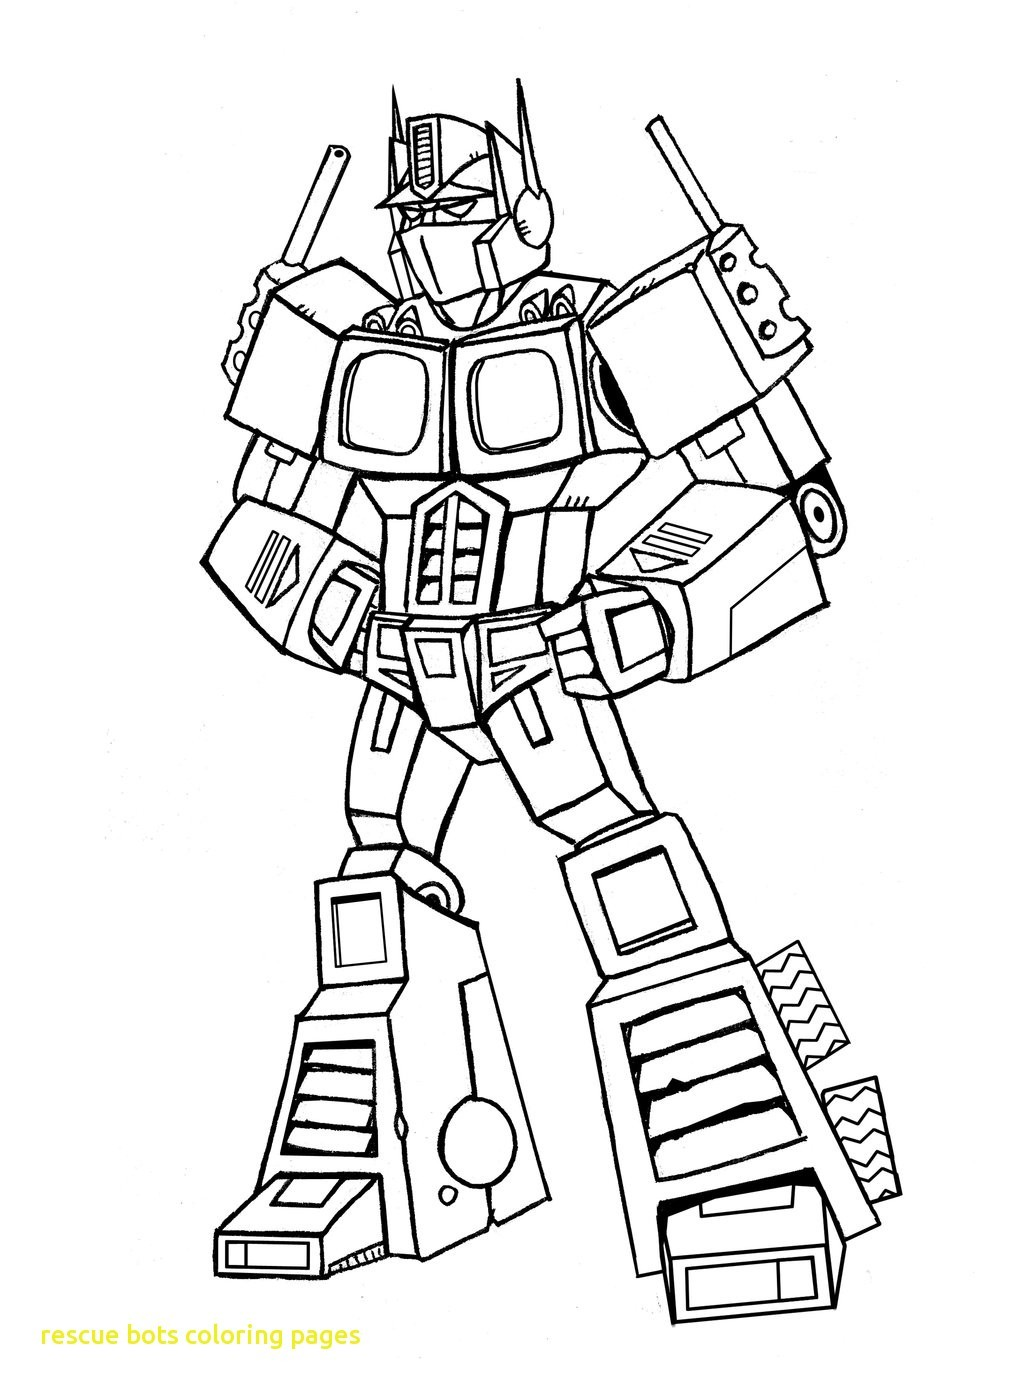 1024x1392 Rescue Bots Coloring Pages To Print Copy Rescue Bots Coloring